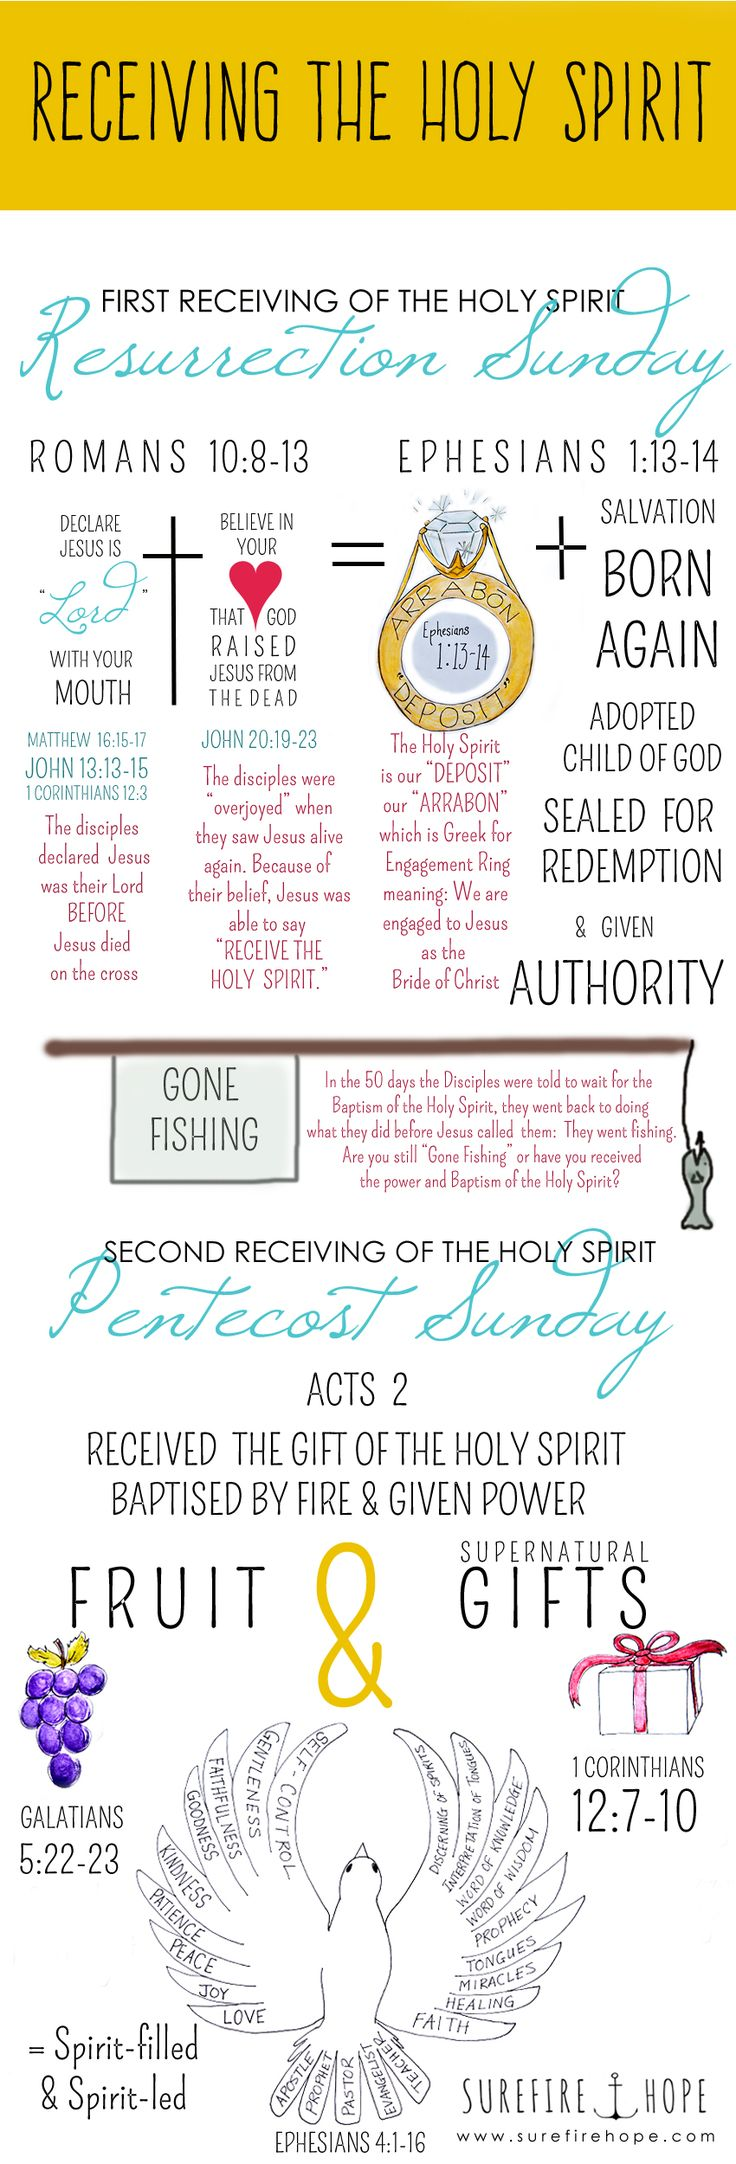 "Jesus told the disciples to ""Receive the Holy Spirit"" (John 20:19-23) but He also told them wait for the Baptism of the Holy Spirit (Luke 24:49, Acts 1:4-5).  So what did they receive when Jesus blew on them Resurrection Sunday, and how is that receiving of the Holy Spirit different than what they…"